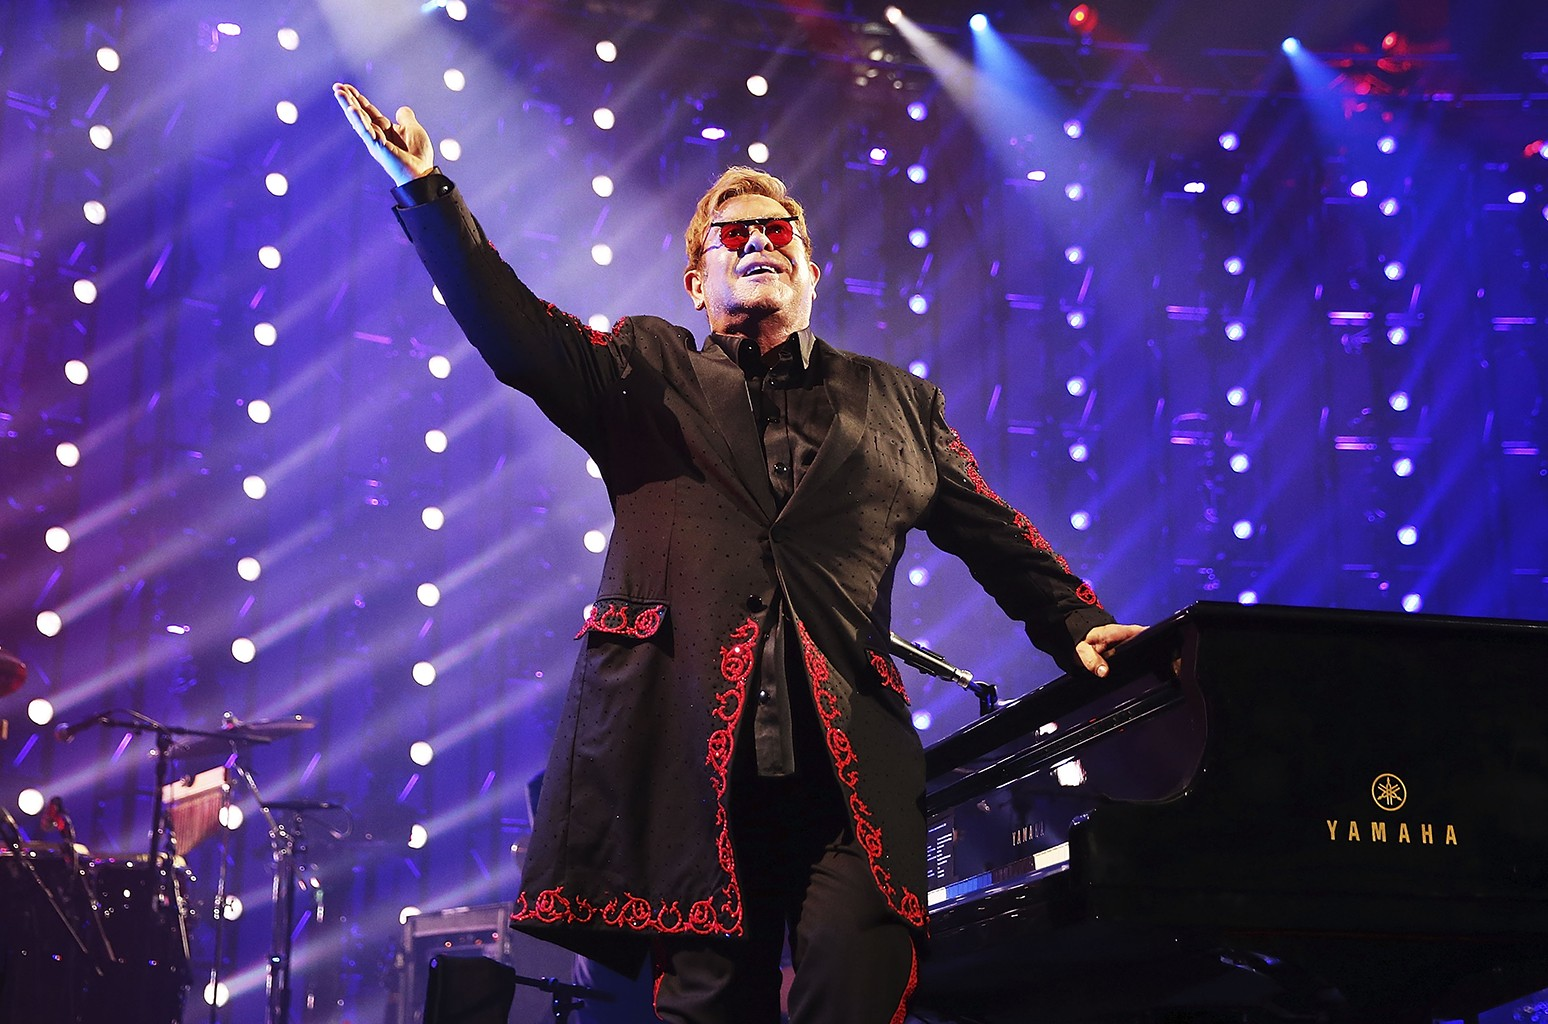 Elton John performs at The Roundhouse on Sept. 18, 2016 in London.